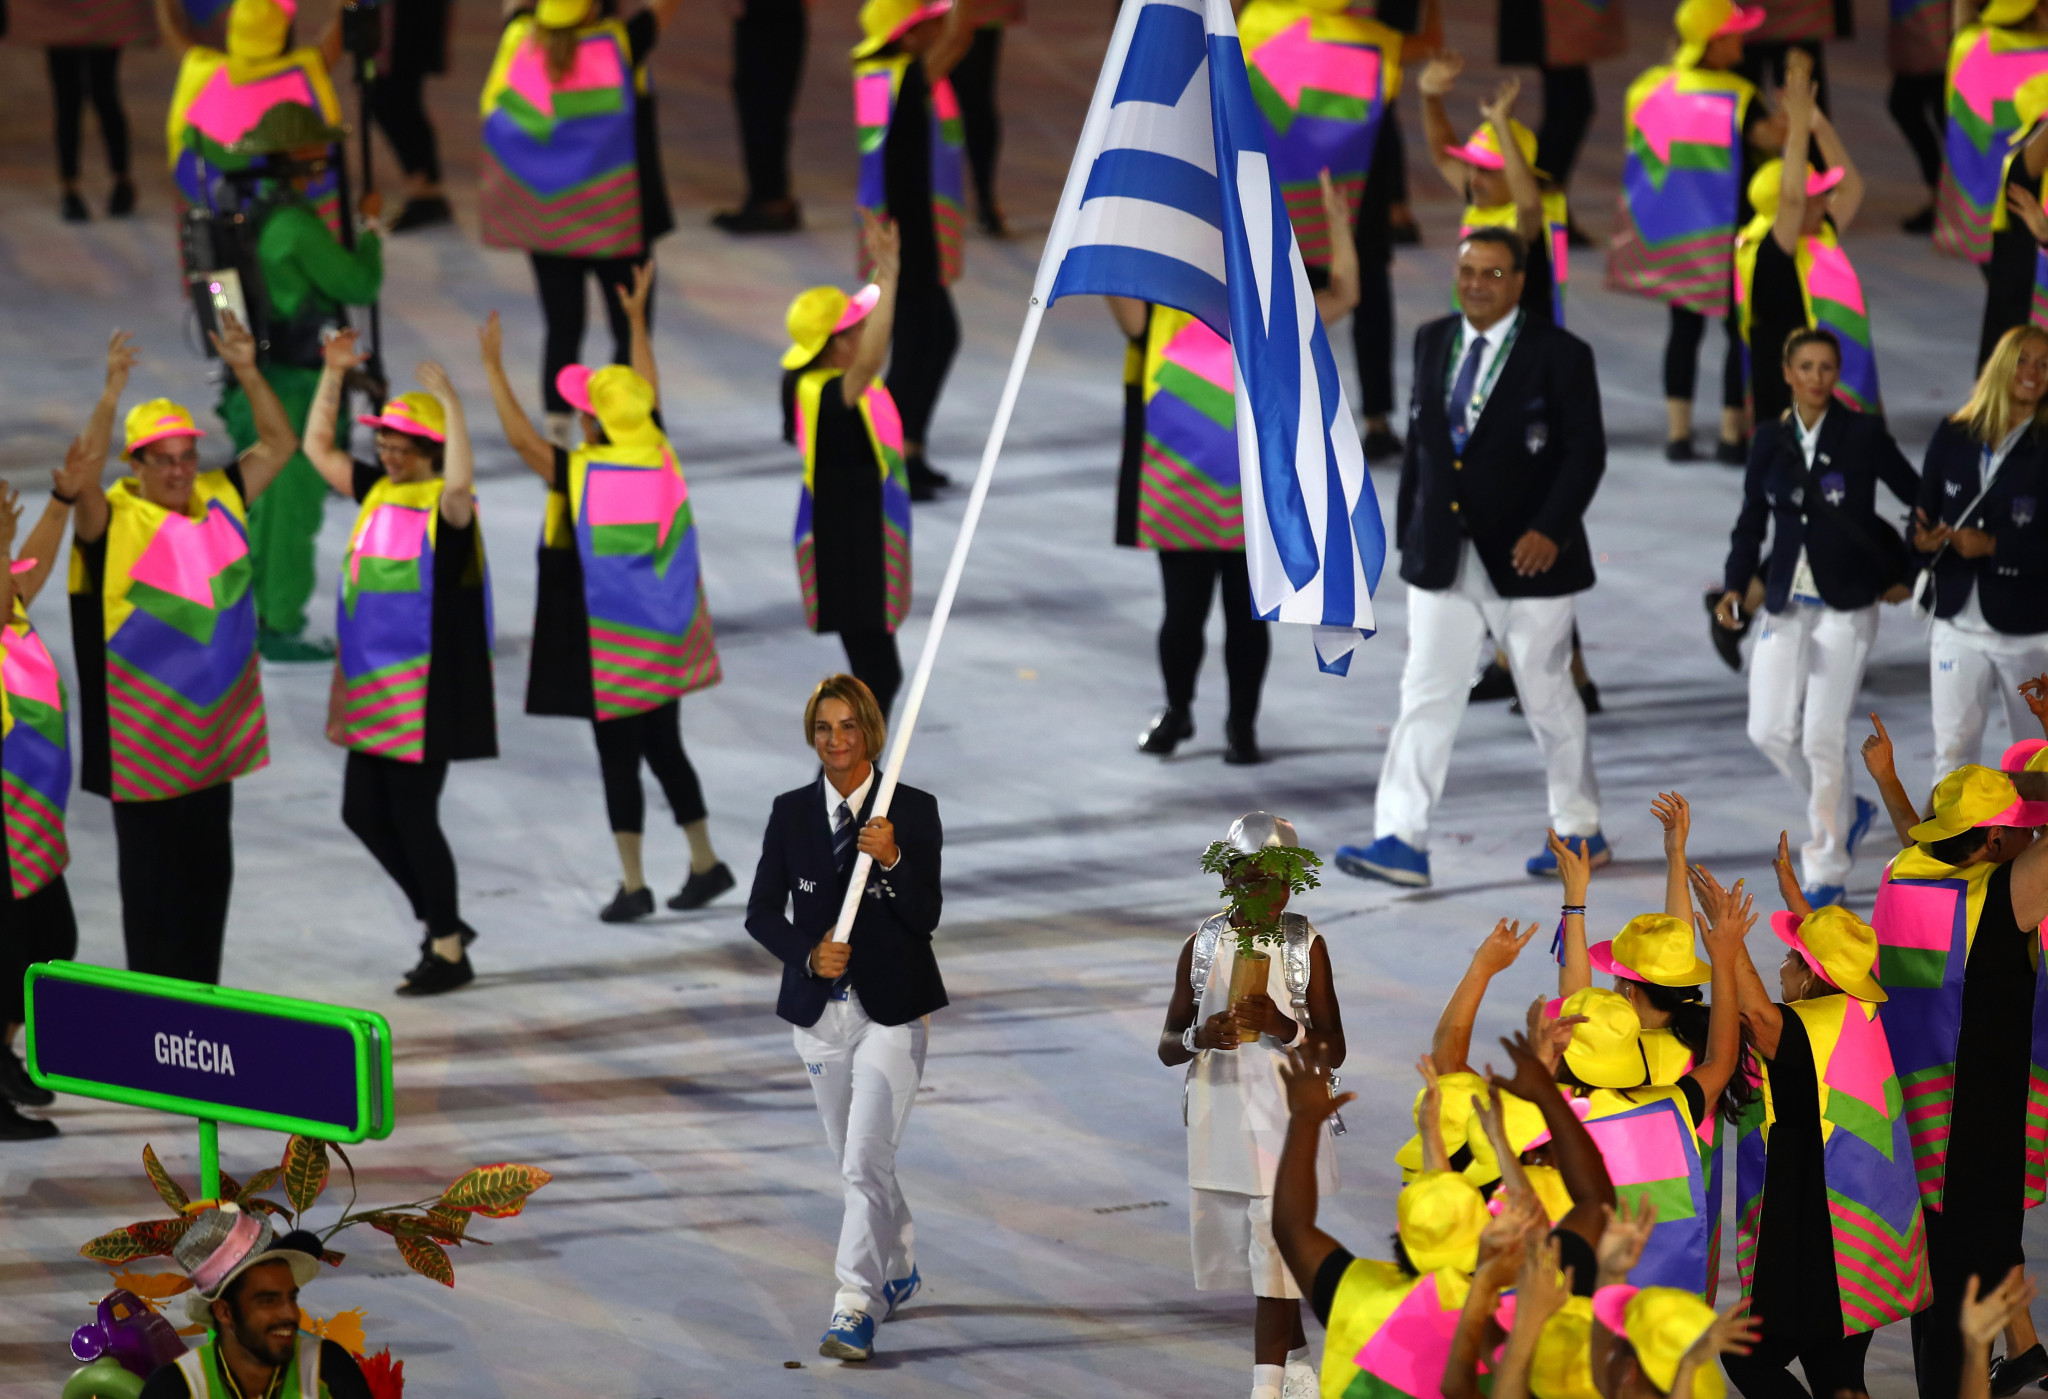 Sofia Bekatorou, who carried Greece's flag at Rio 2016, made the allegation during an online conference ©Getty Images